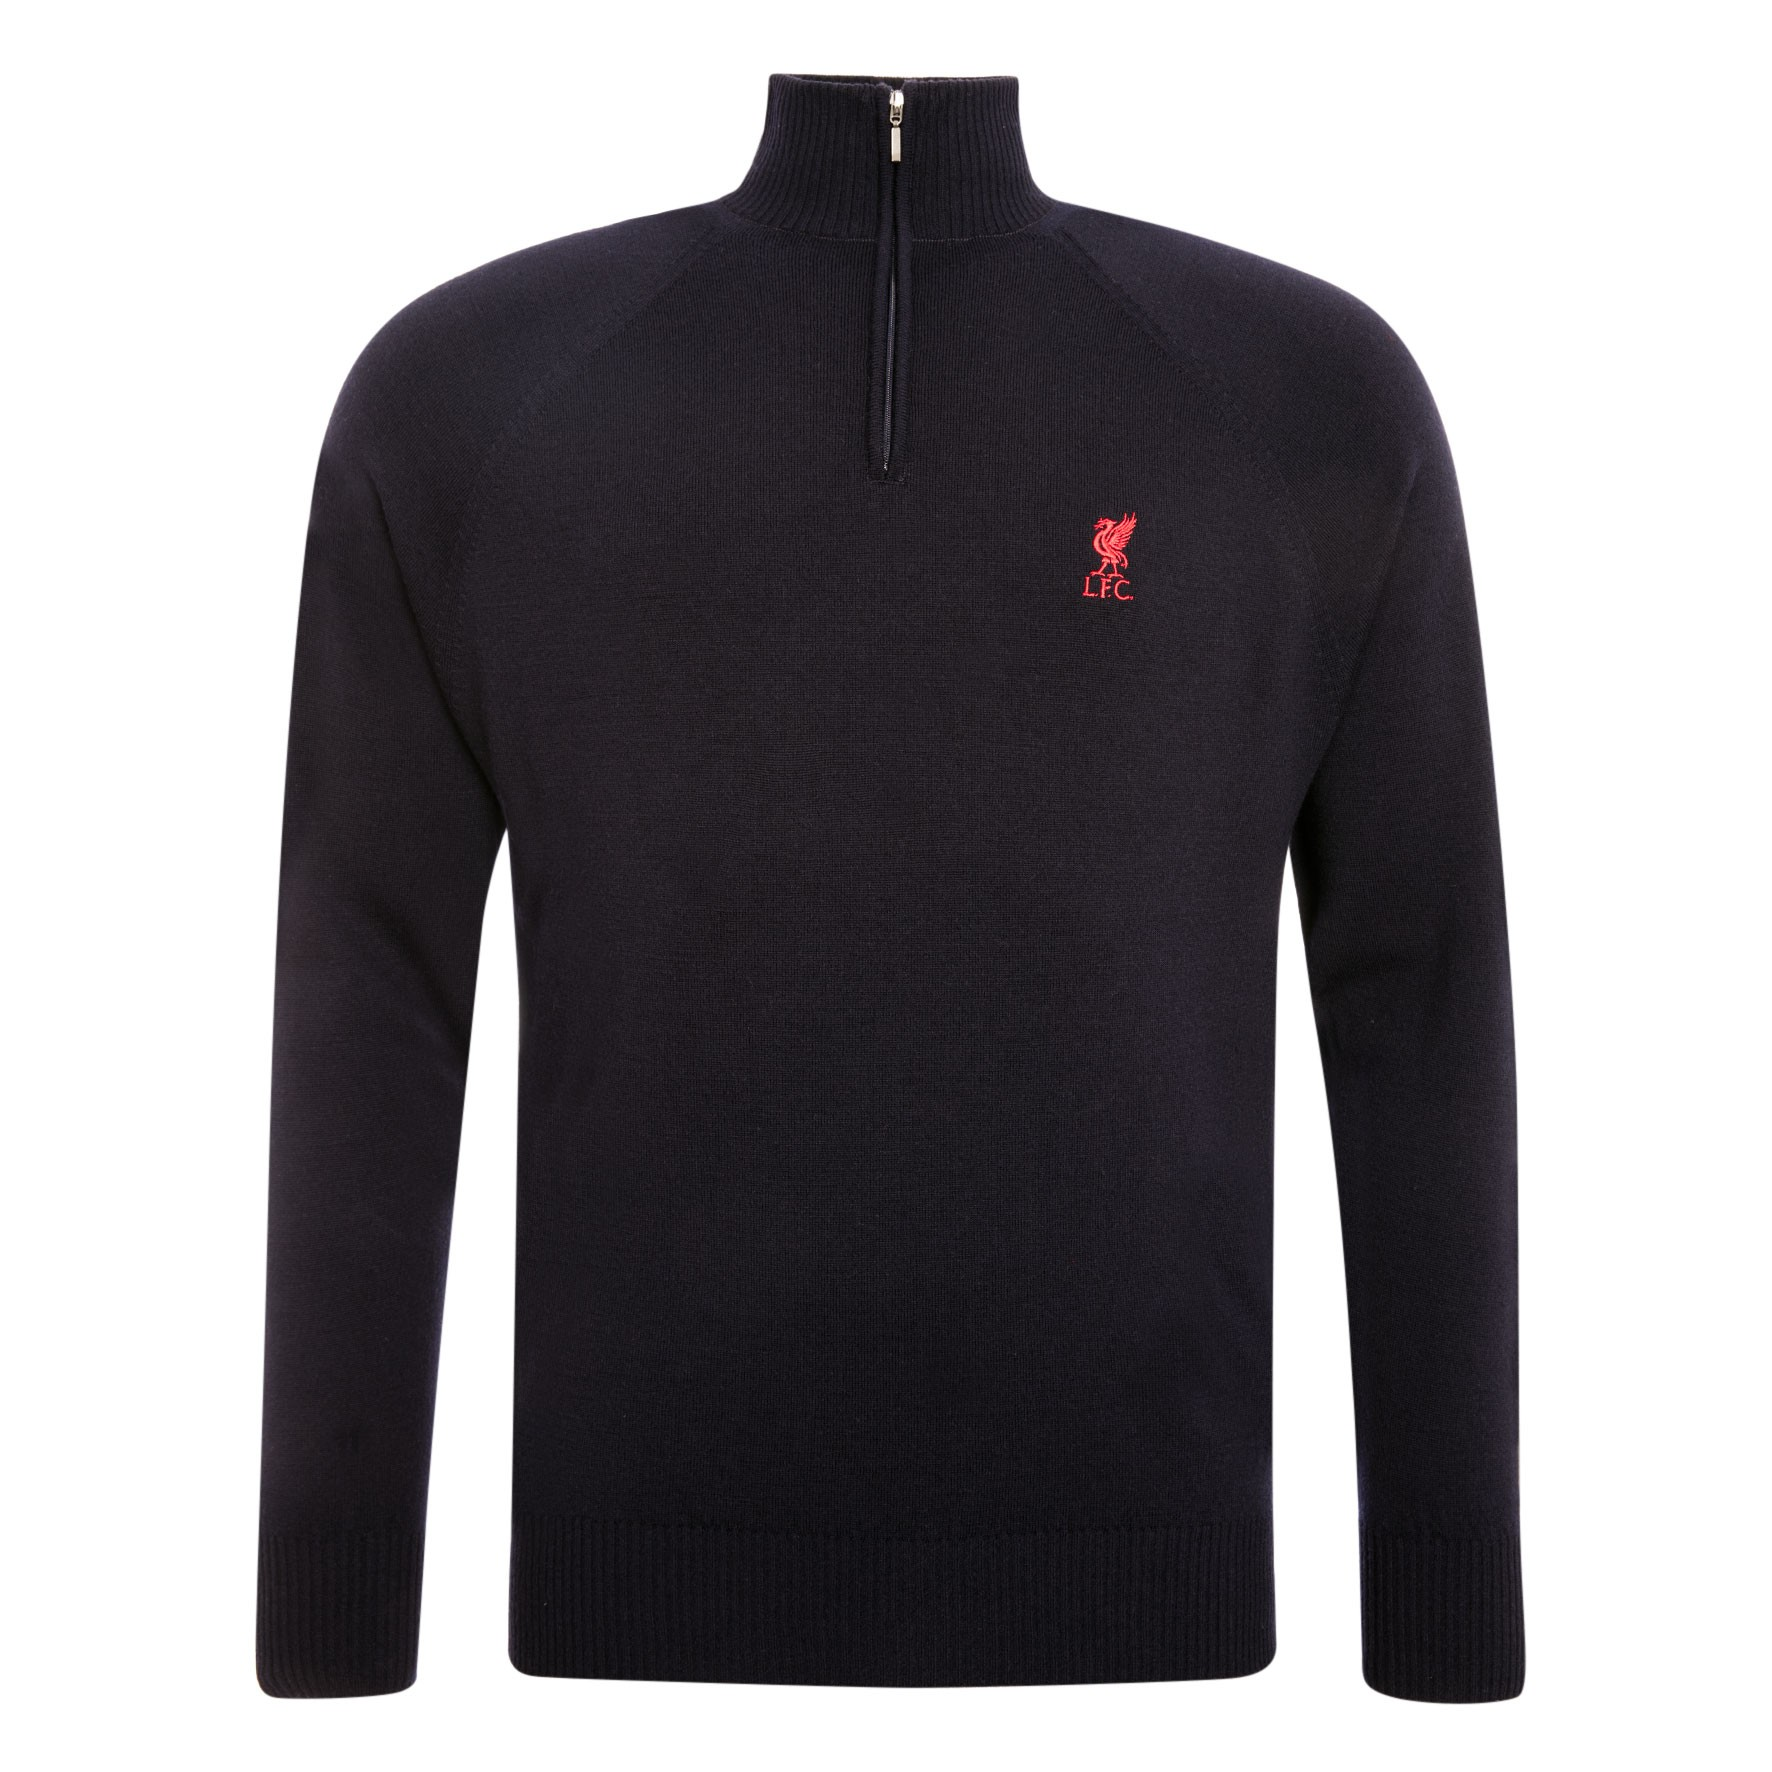 LFC Mens Navy Signature Merino 1/4 Zip Jumper